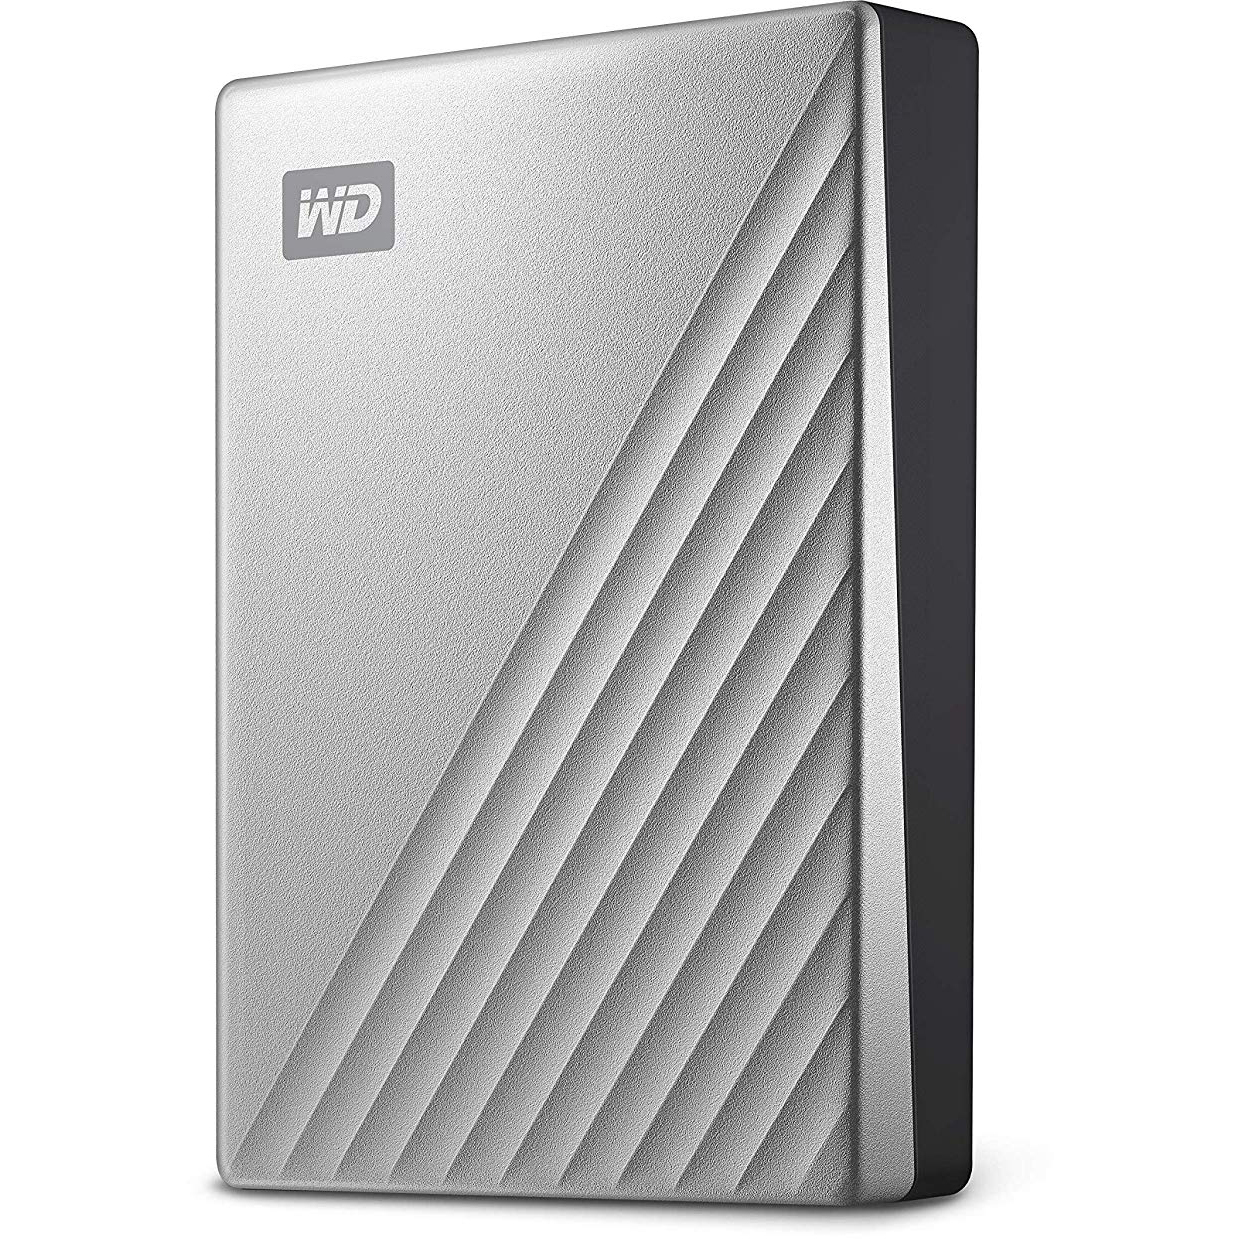 Original Western Digital My Passport Ultra 4TB Silver USB 3.0 External Hard Drive (WDBFTM0040BSL-WESN)